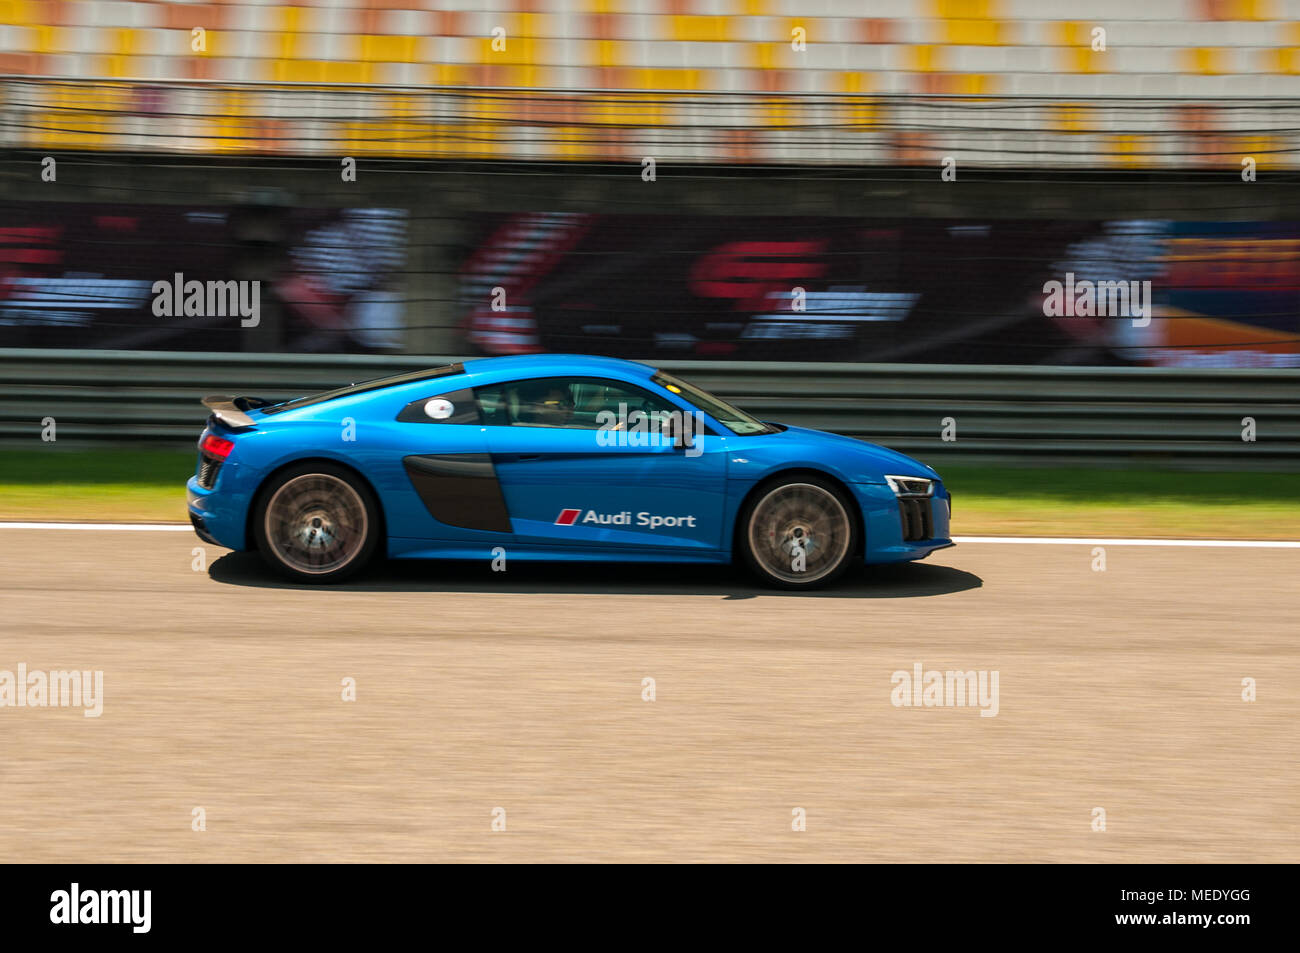 A Blue Audi R8 V10 Coupe Performance Speeds Past The Stands At An Audi  Driving Experience Day Held At The Shanghai International Circuit Stock  Photo: ...